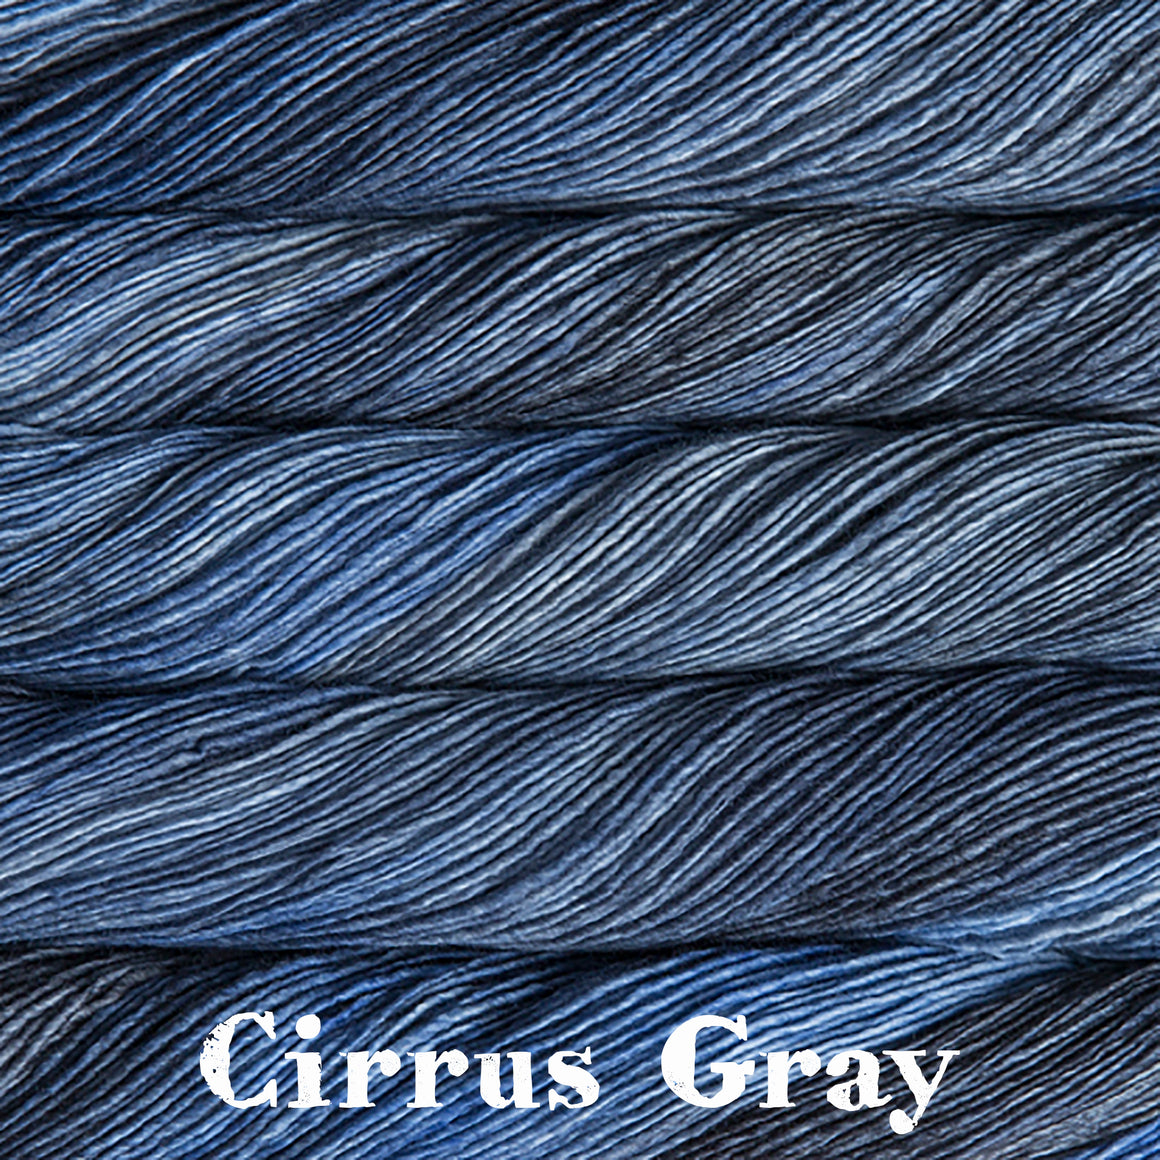 mechita cirrus gray